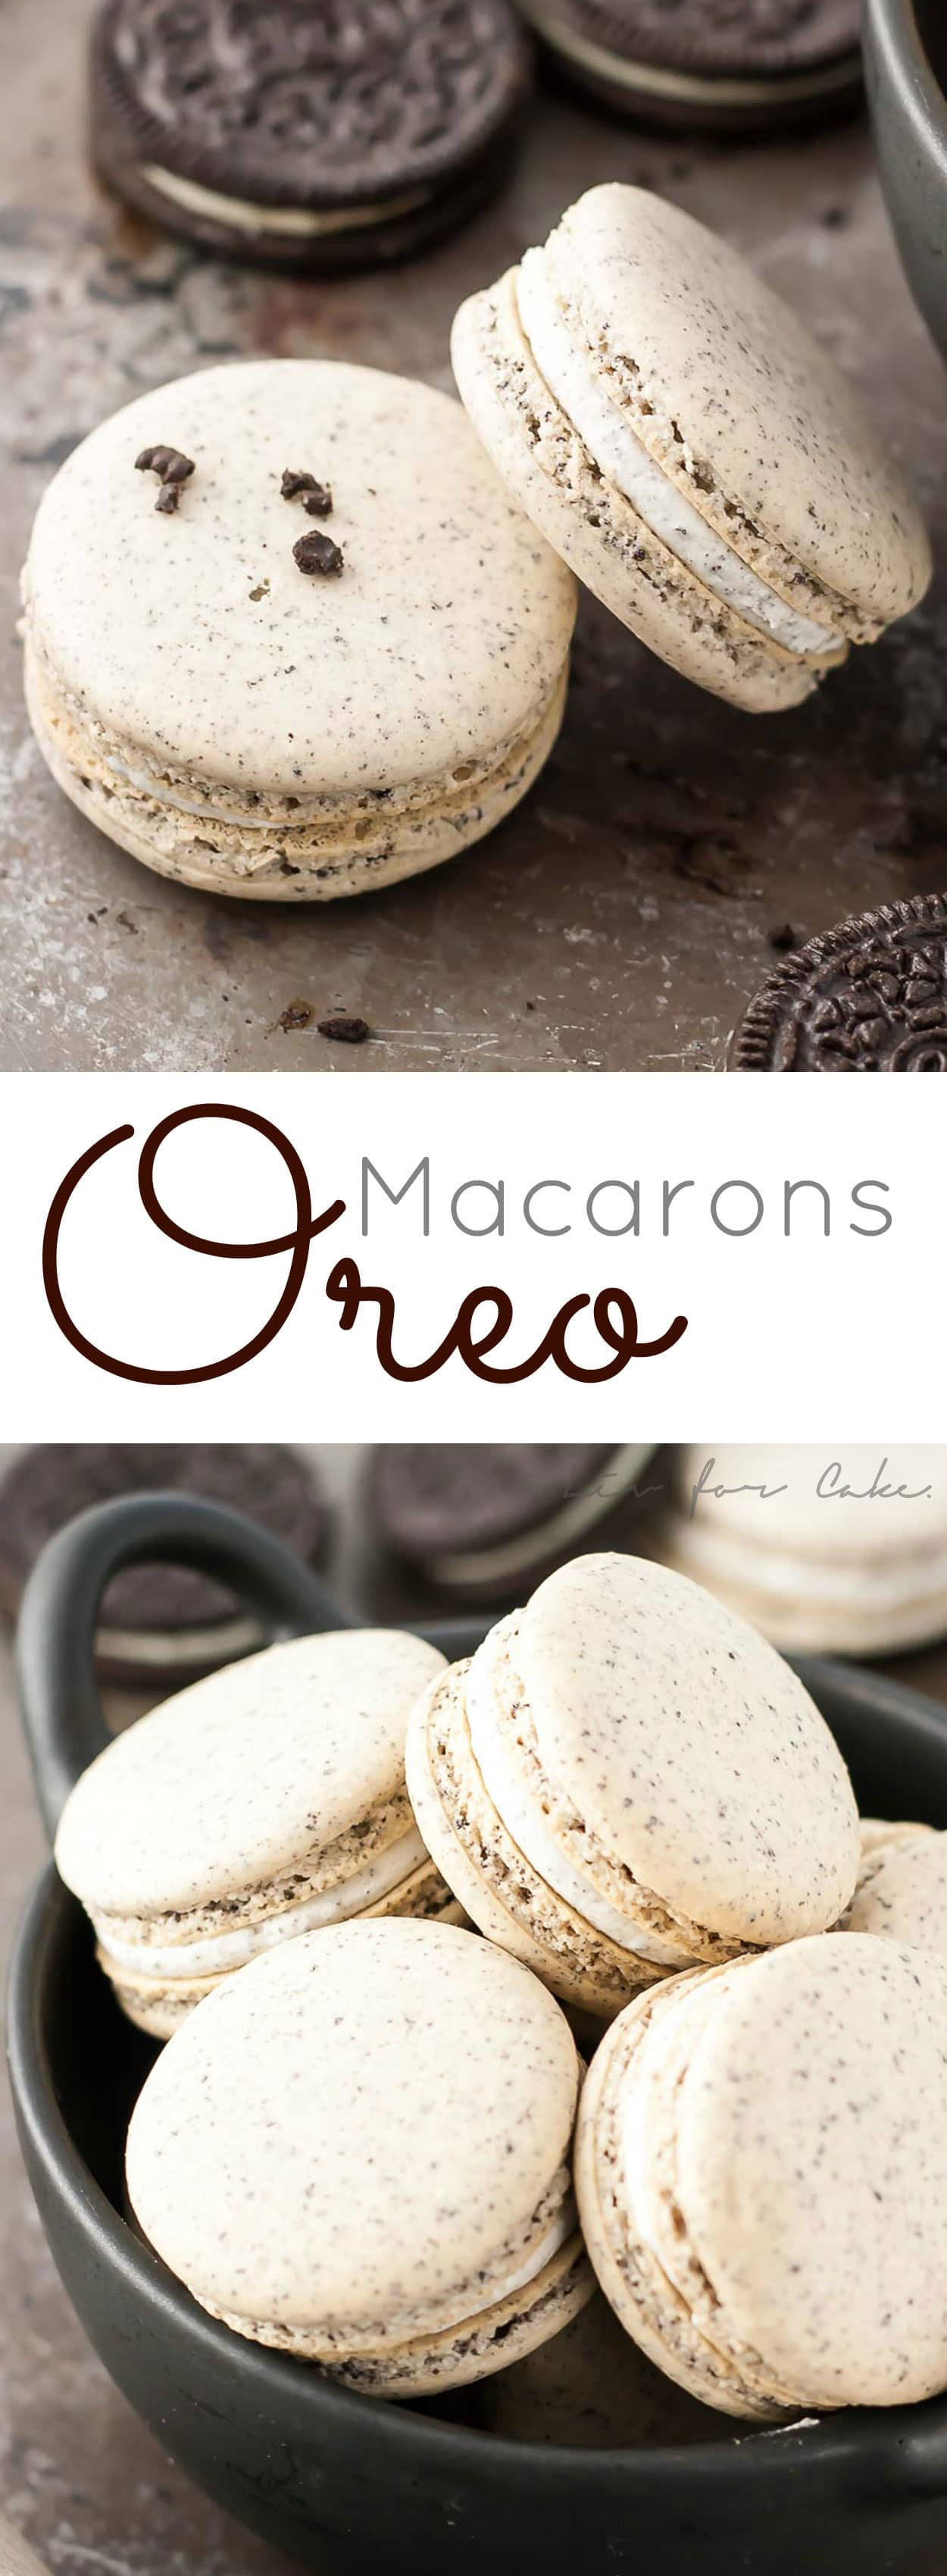 Oreo Macarons! Turn your favourite store-bought classics into something more decadent with these delicate Oreo macarons.